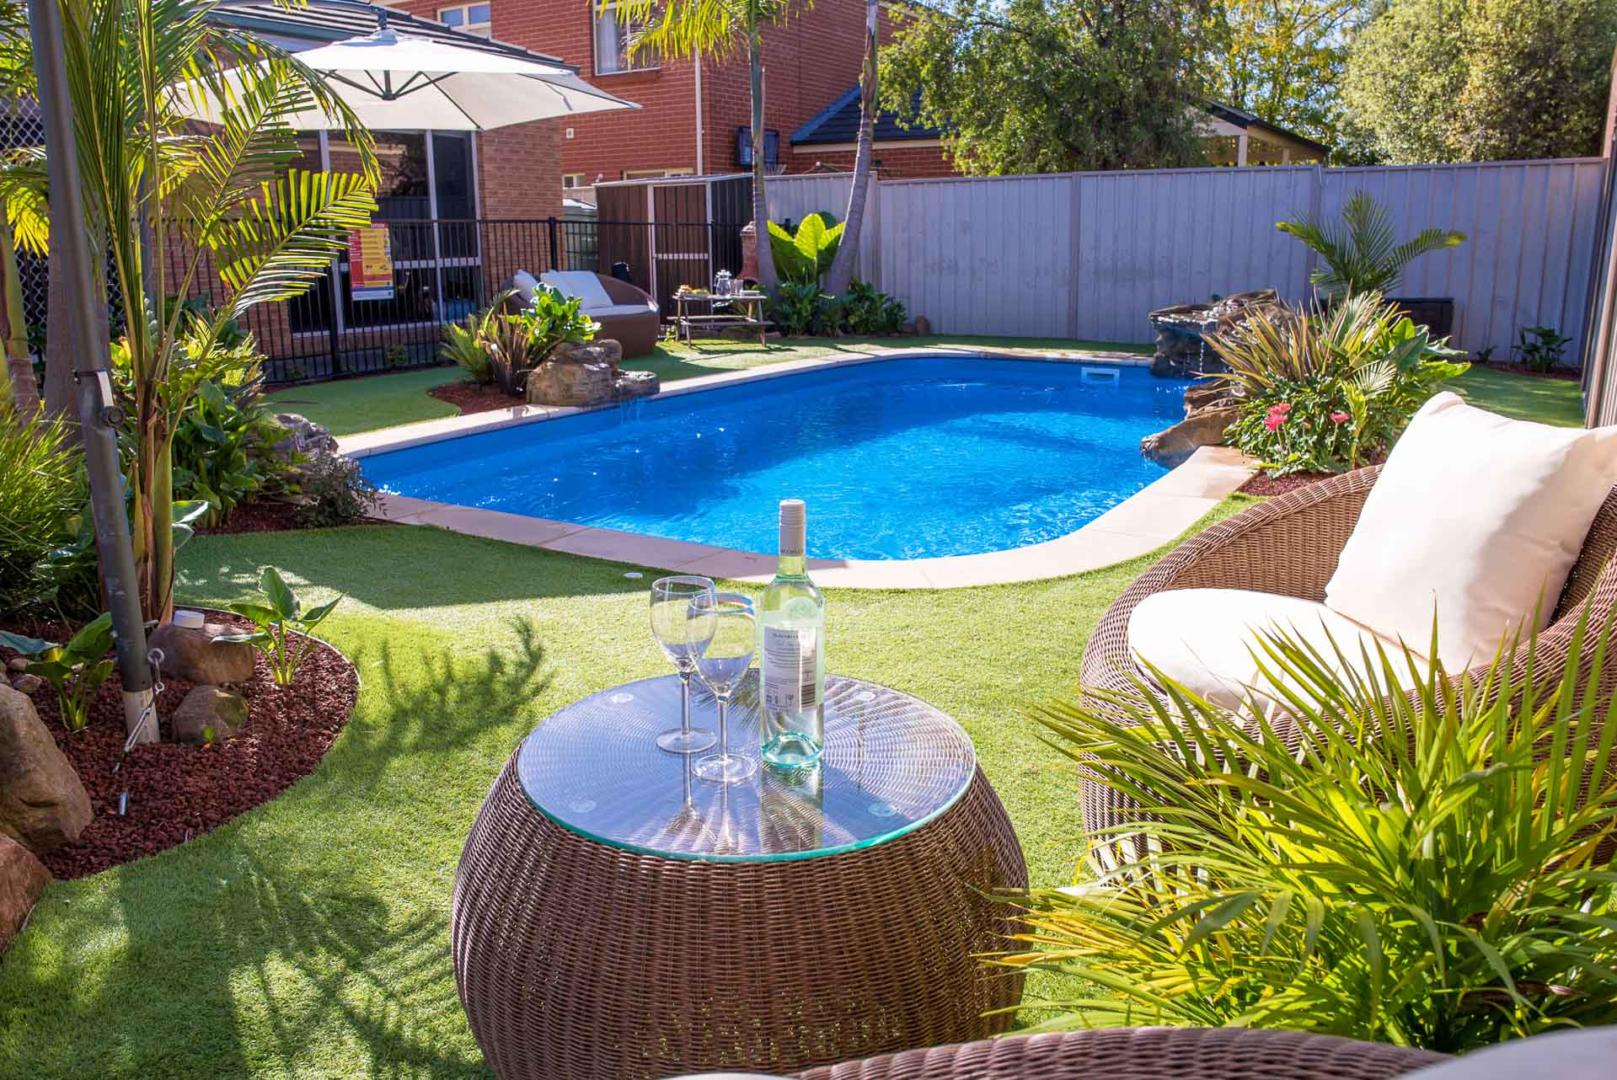 How to choose a swimming pool that's right for your backyard - What about a large backyard, Australian Outdoor Living.